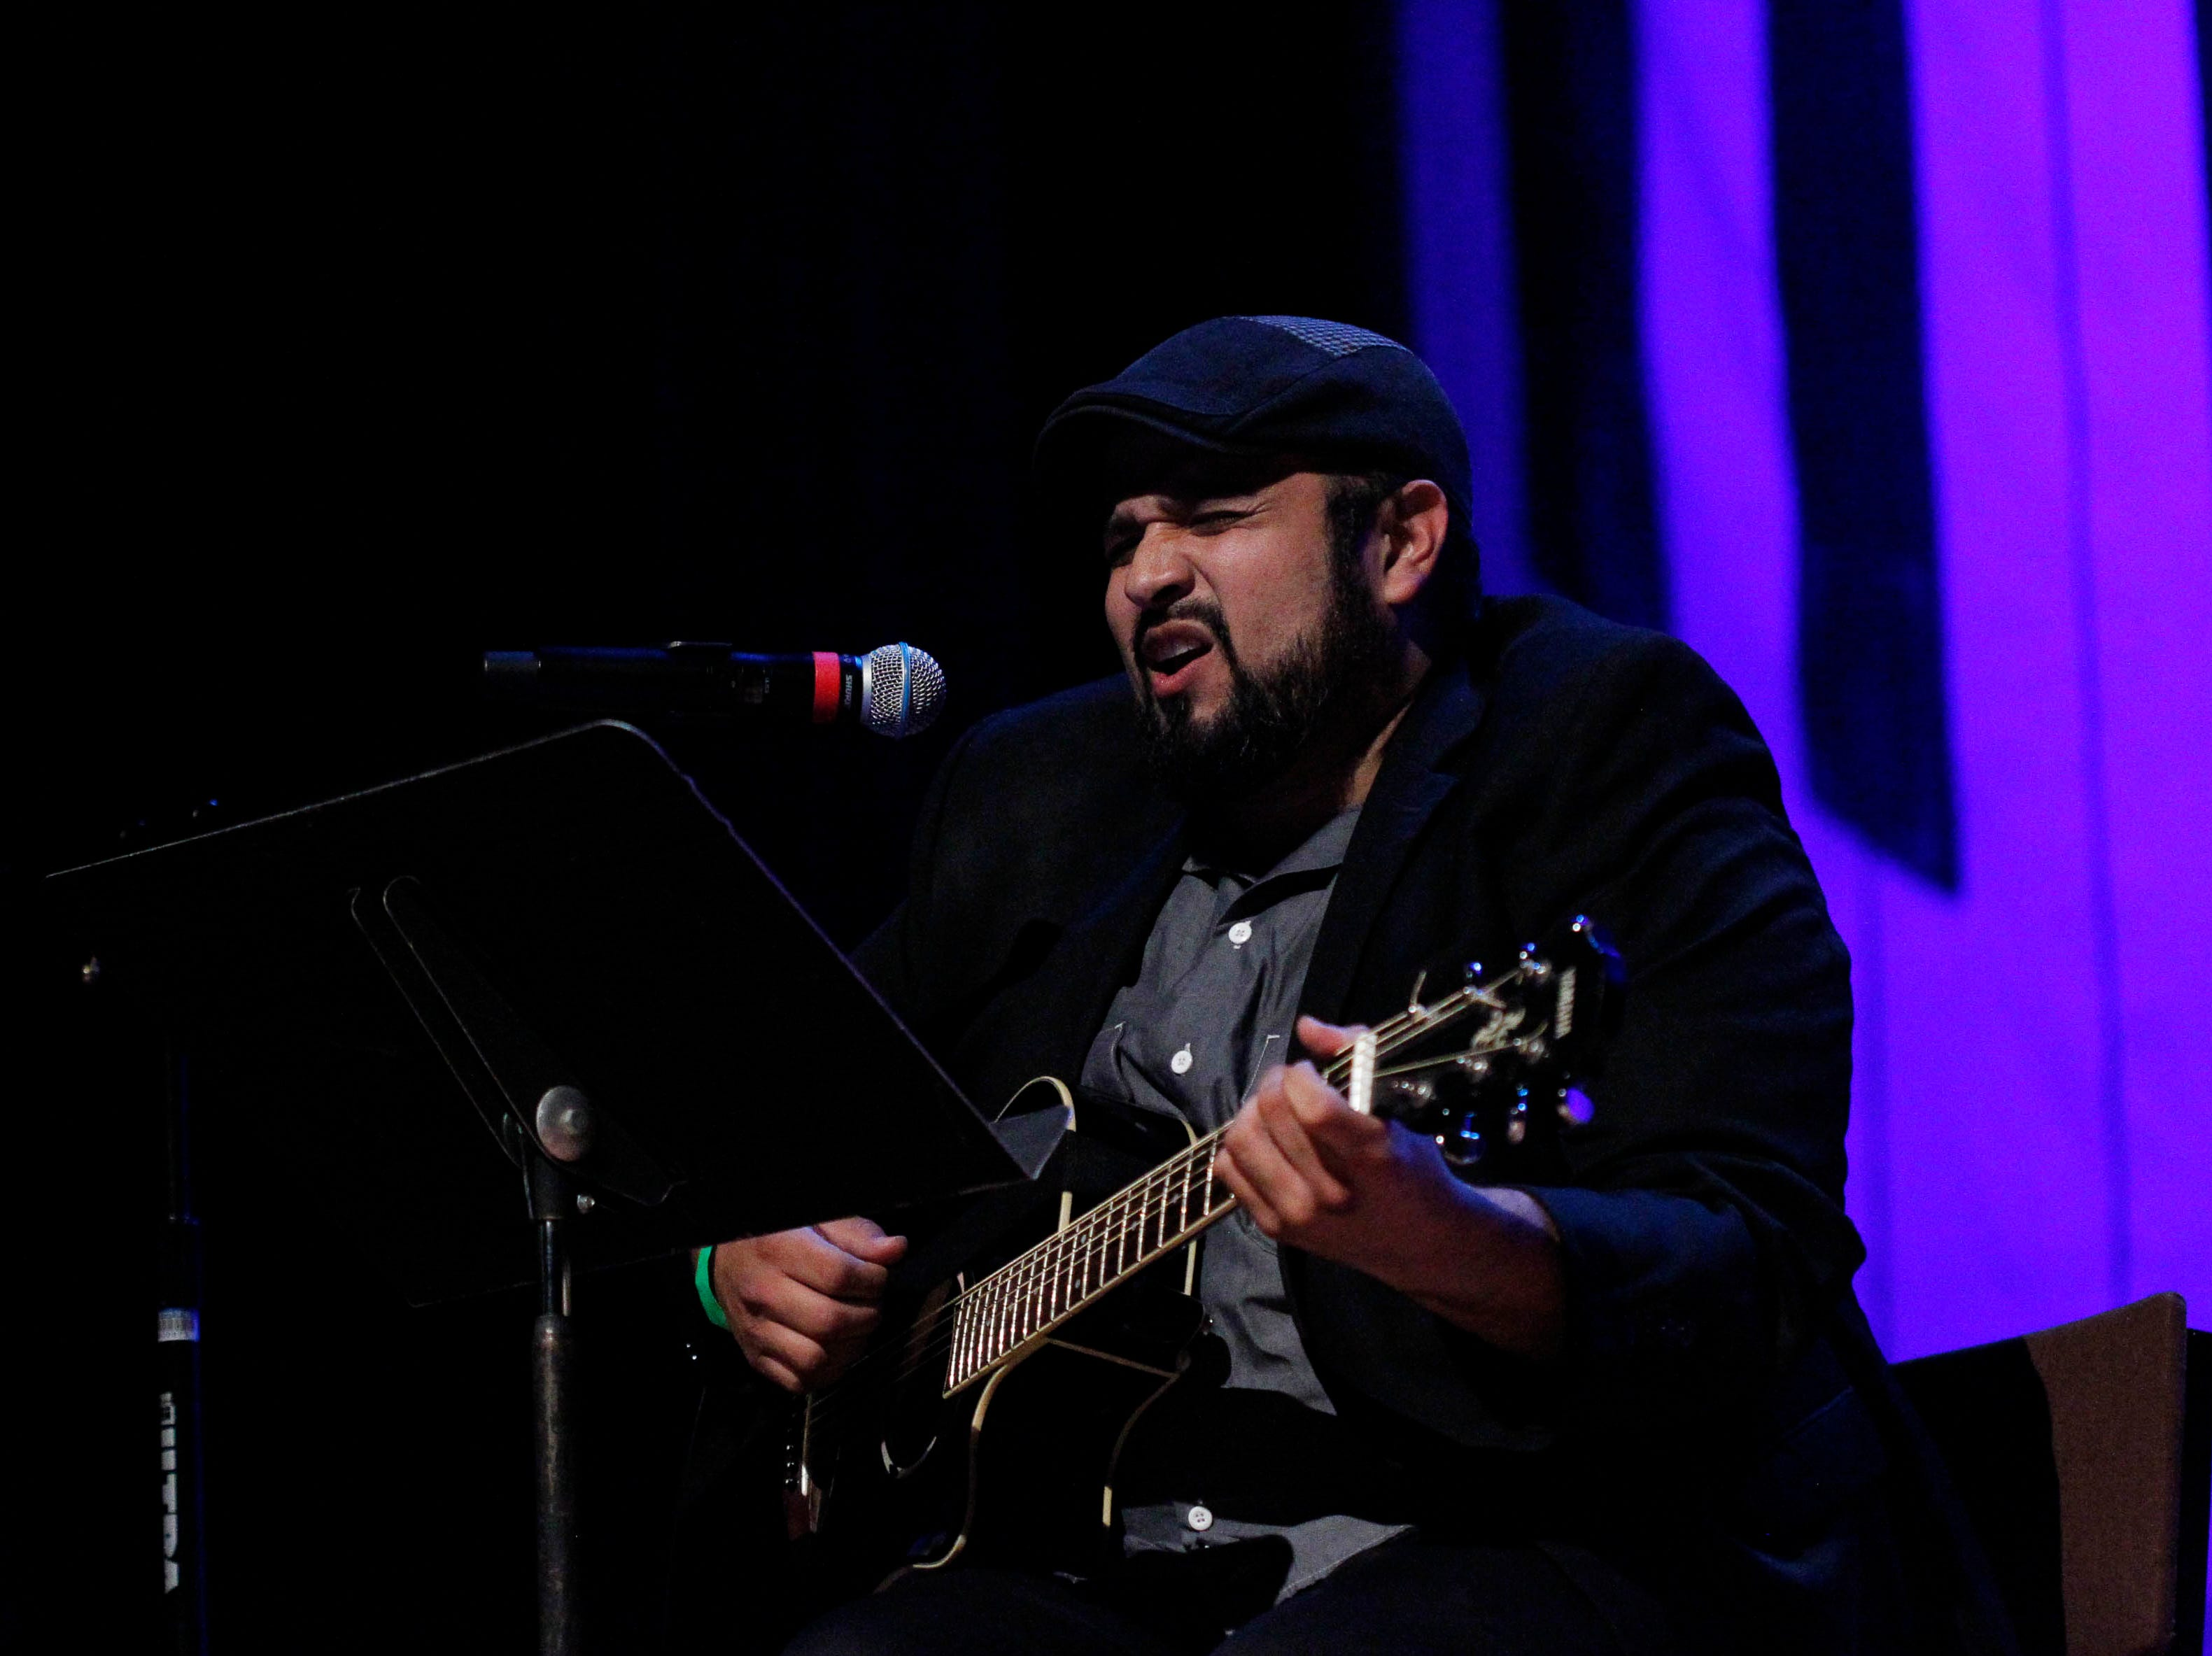 Sergio J. Ramos sings while playing his guitar during the 12th annual Noche Bohemia at Sherwood Hall on Saturday, April 27, 2019 in Salinas, Calif.